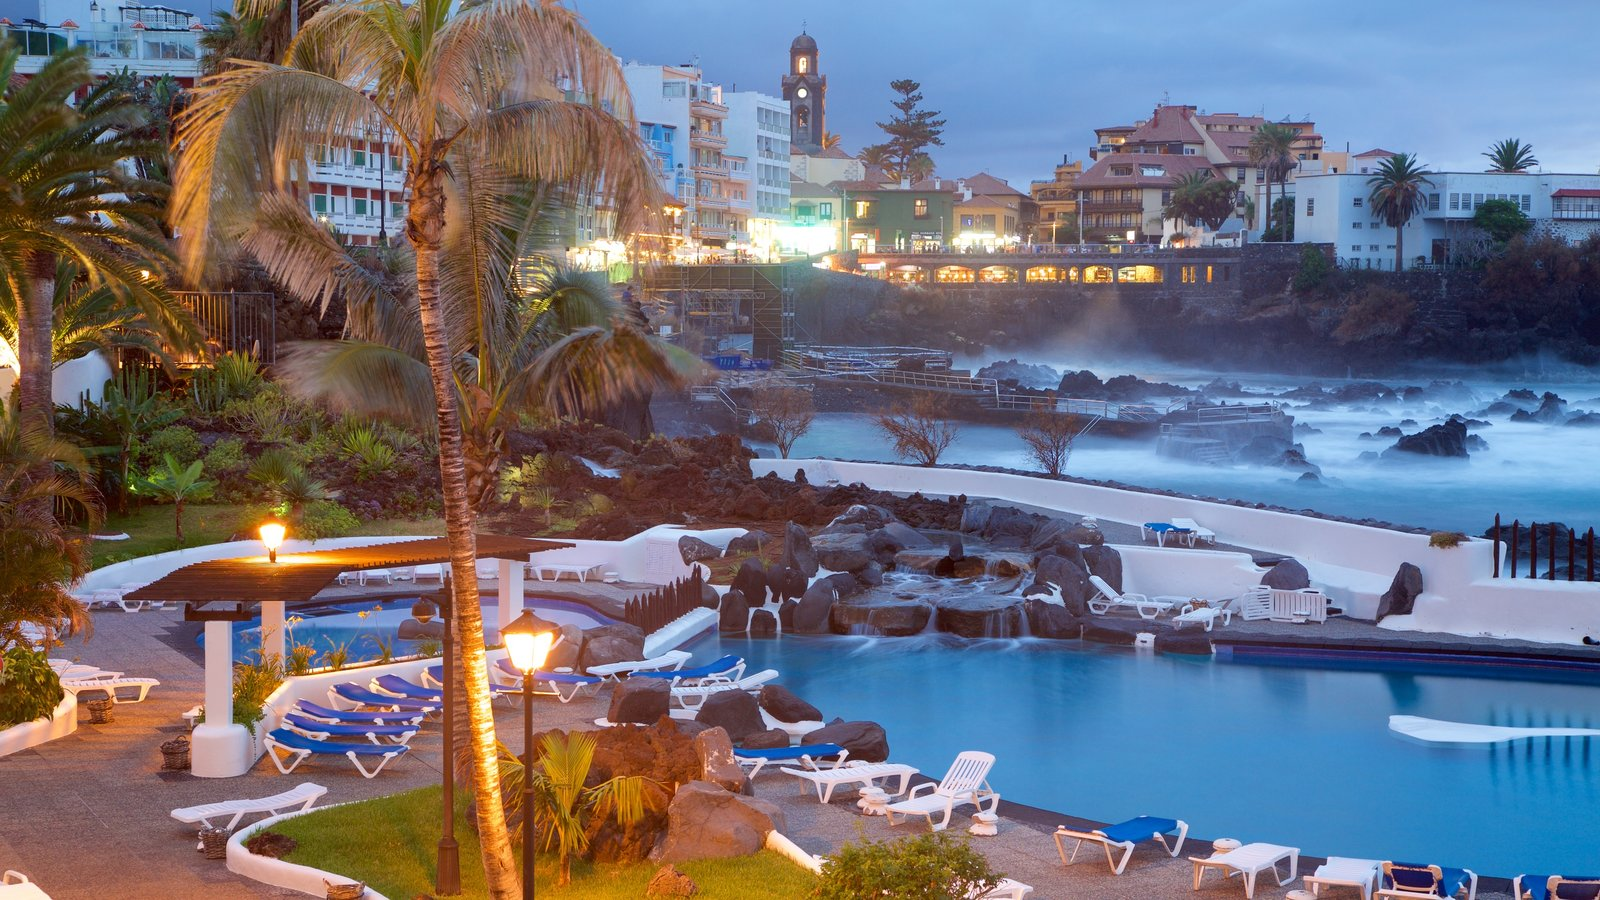 Tenerife pictures view photos images of tenerife - Hotel puerto de la cruz puerto de la cruz ...